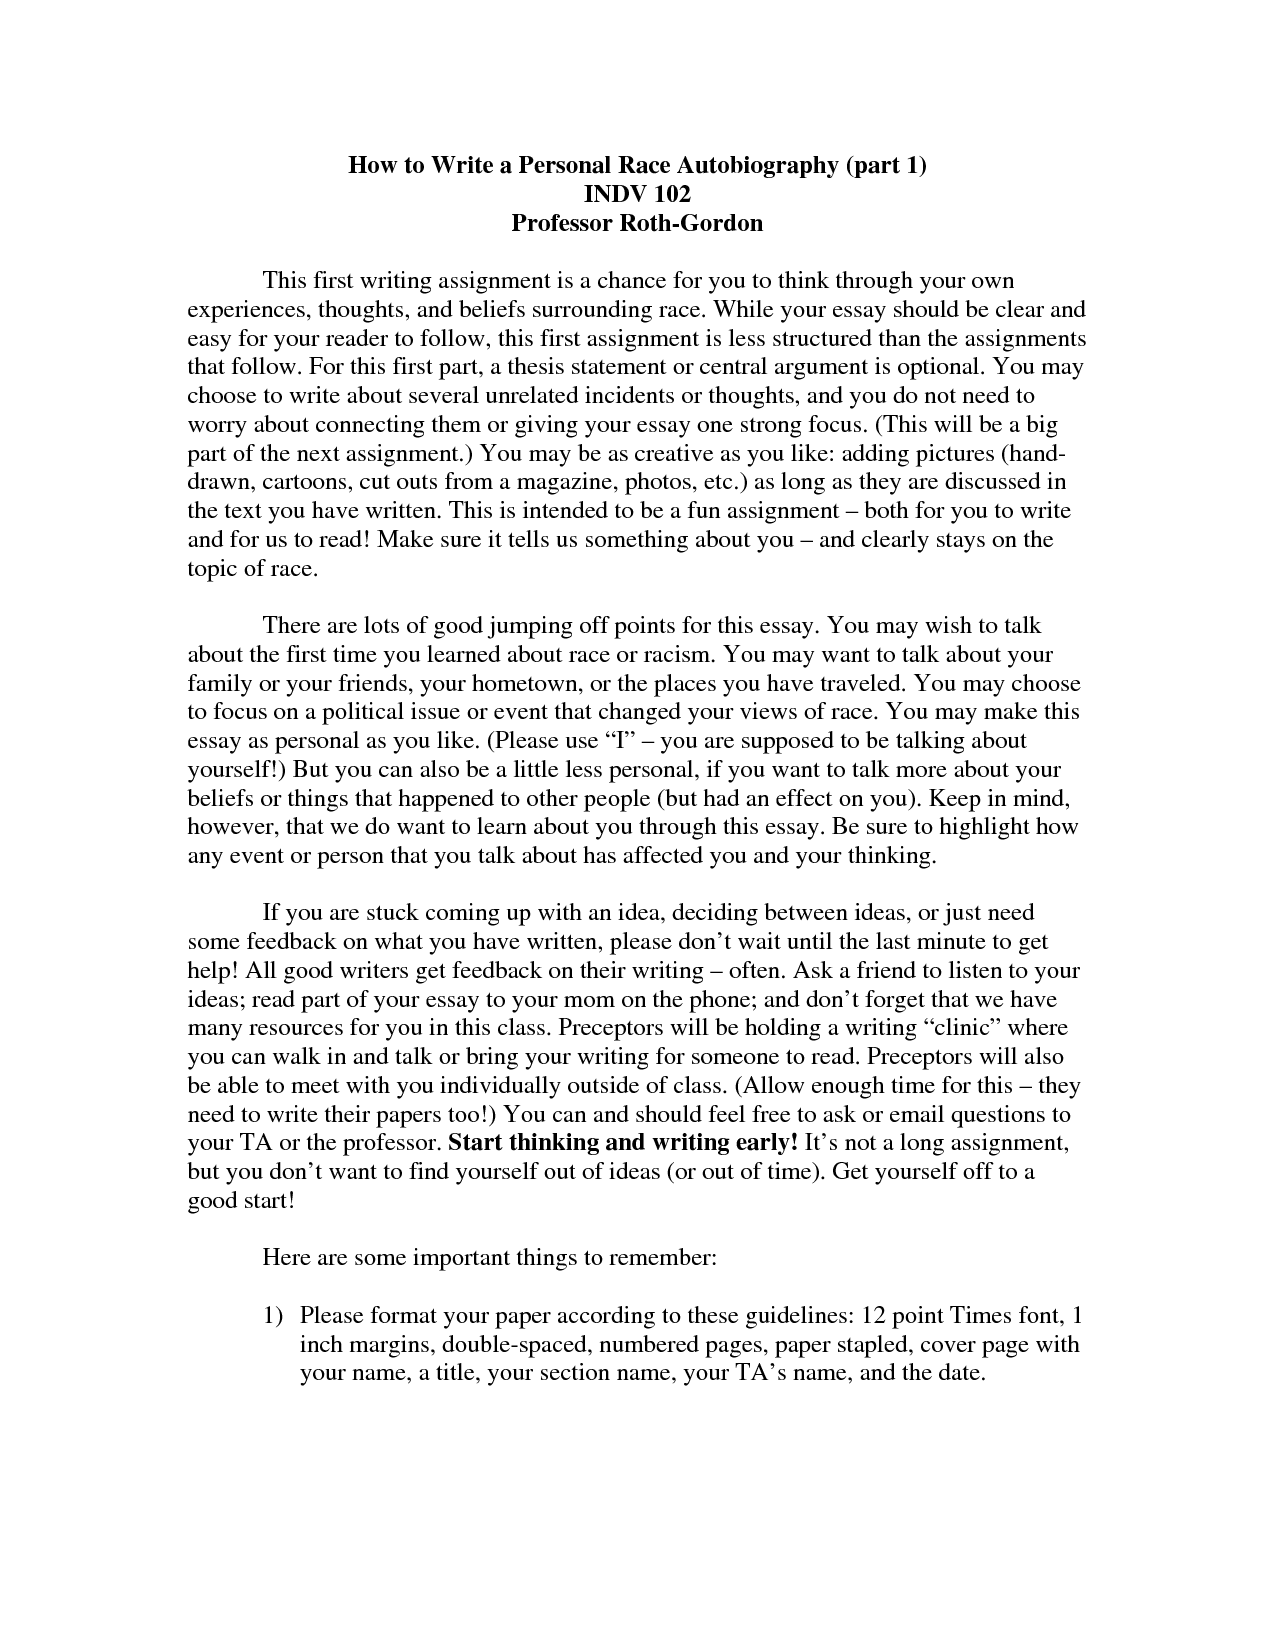 020 Essay Example Autobiography Best Photos Of Personal Narrative An Autobiographical How To Write Writing Outline For Scholarship College Admissions Unique Highschool Students Pdf Bibliography Examples Full